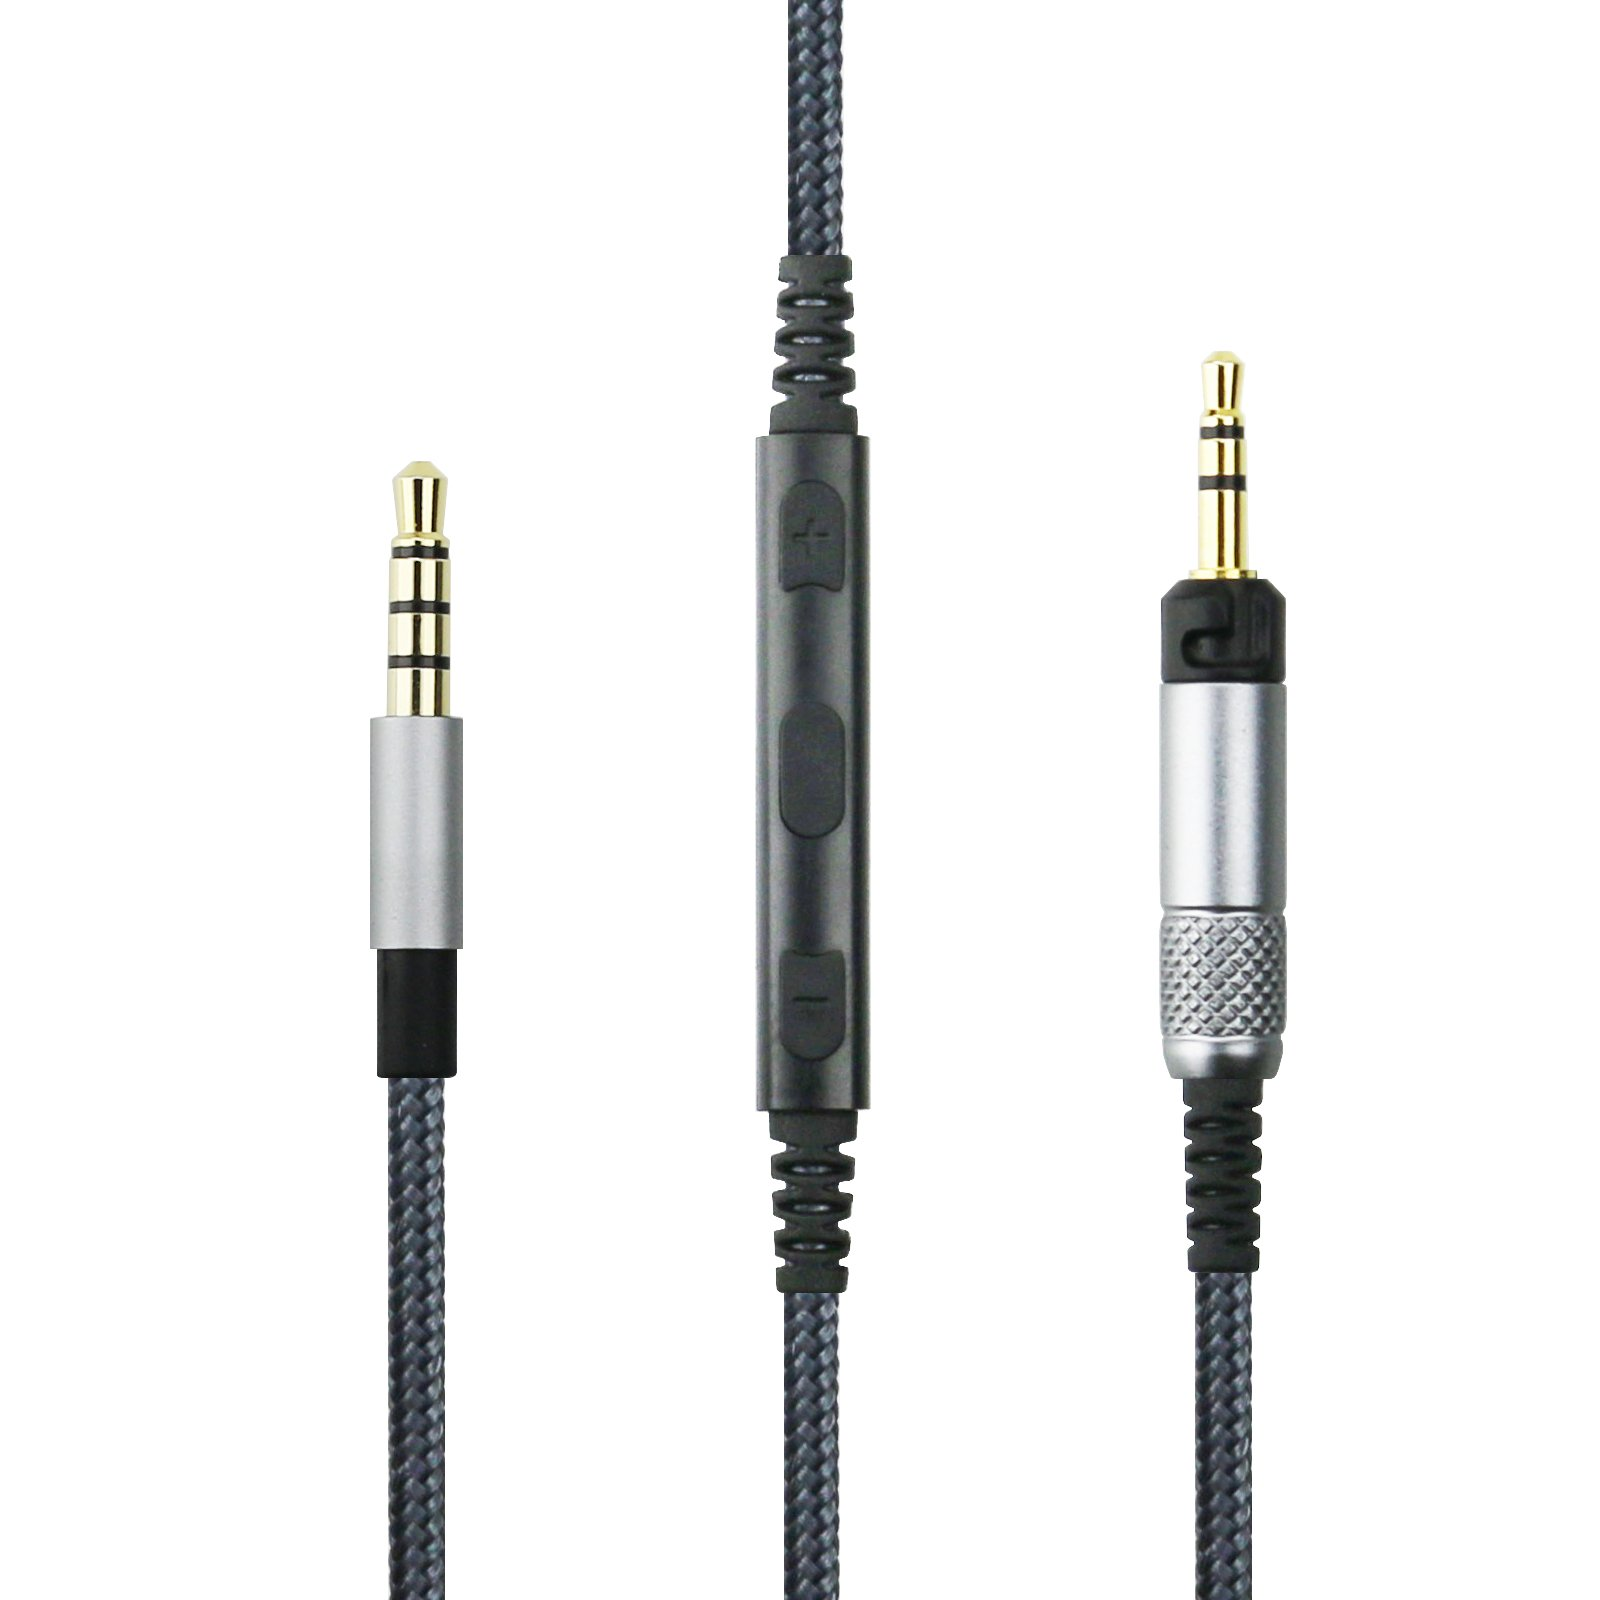 NewFantasia replacement cable for Audio Technica ATH-M50x, ATH-M40x, ATH-M70x Headphones, Remote volume control & Mic fit iphone ipod ipad apple devices